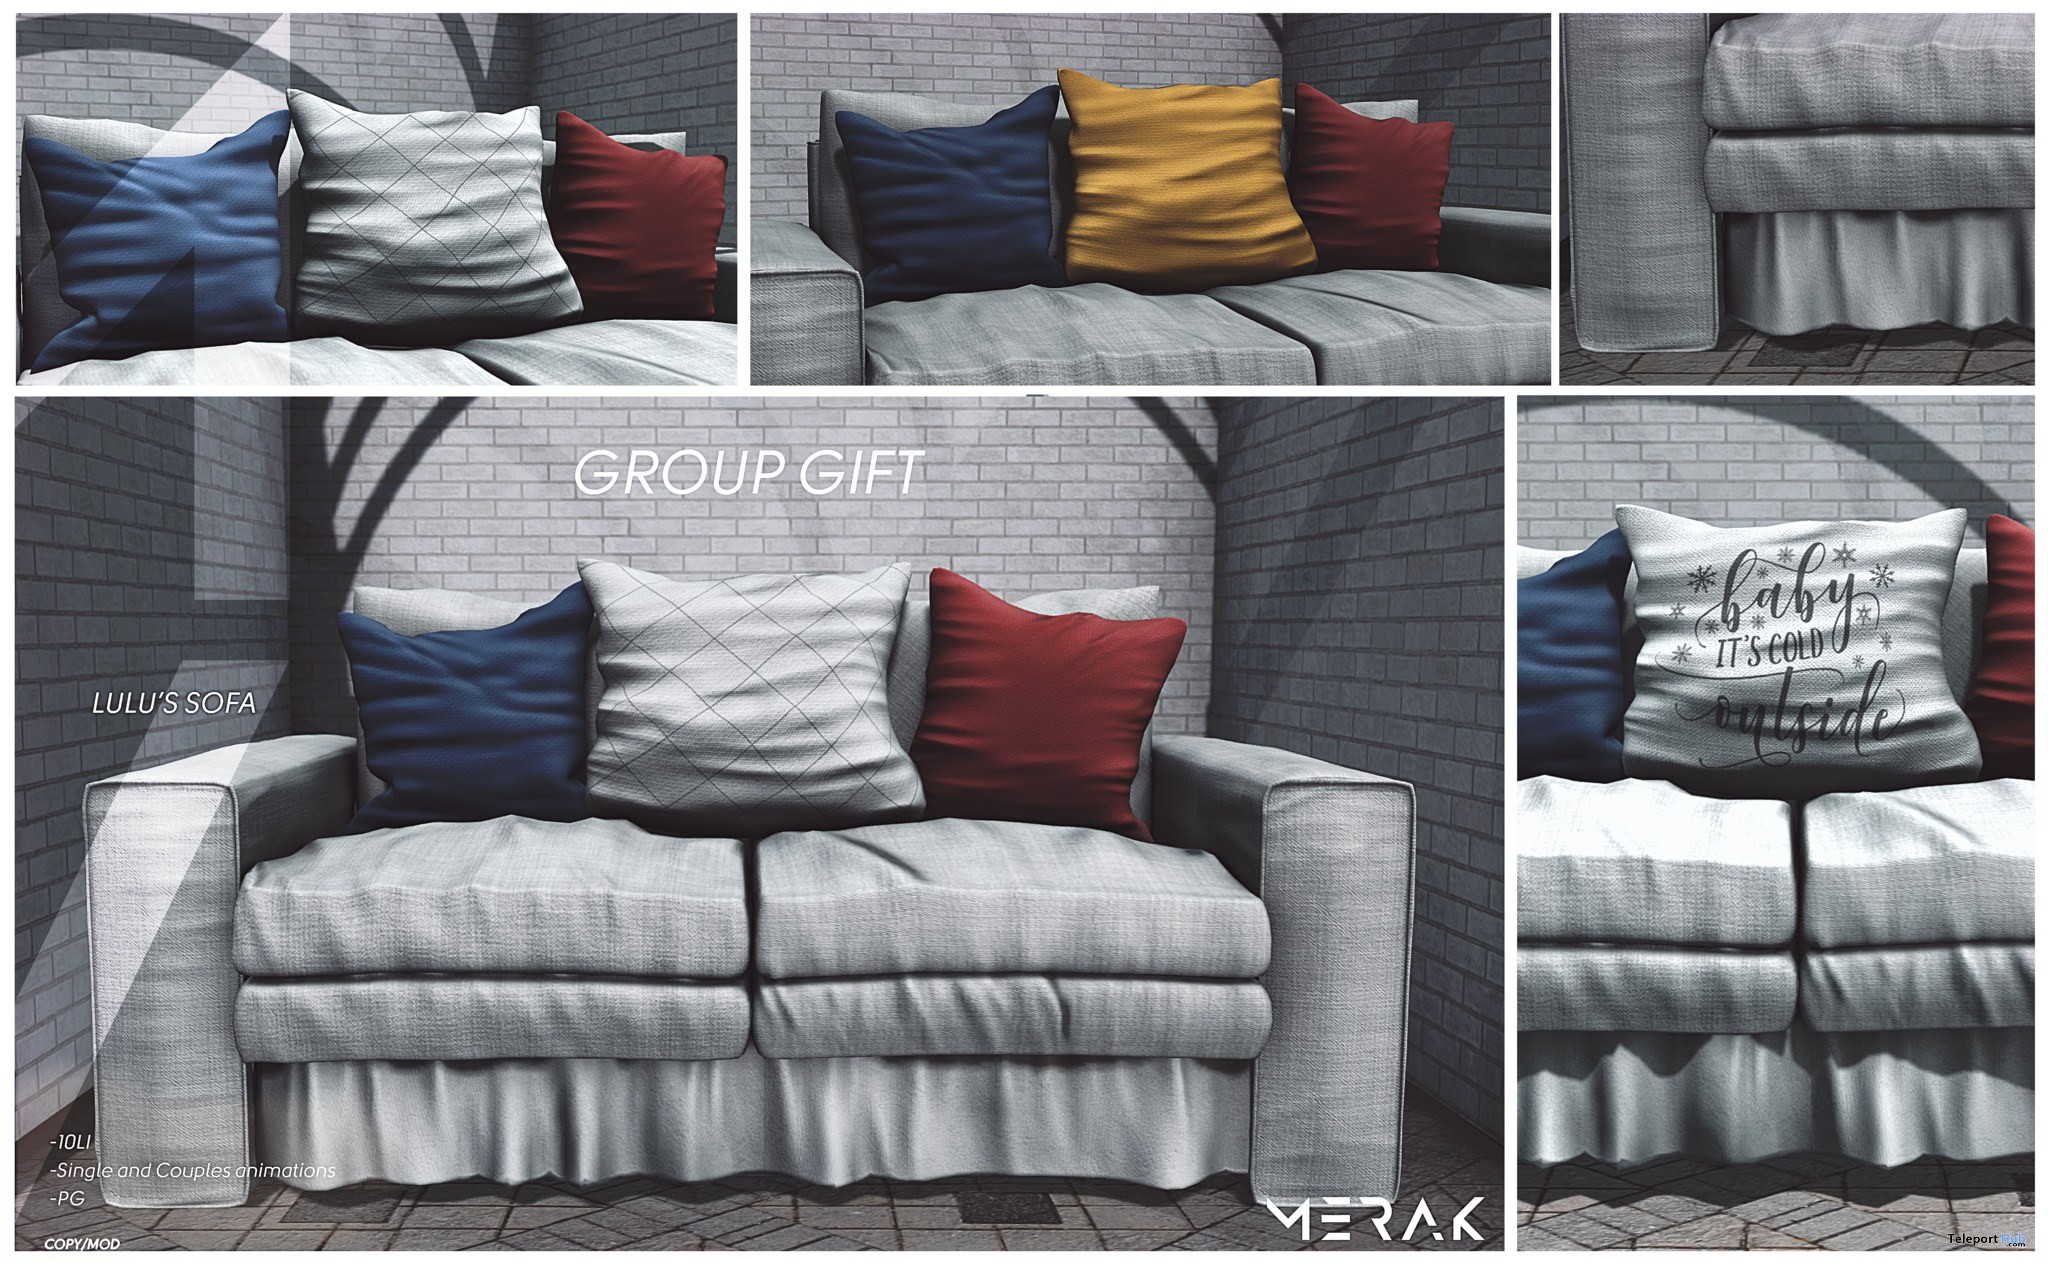 Lulu's Sofa PG Edition December 2018 Group Gift by Merak - Teleport Hub - teleporthub.com